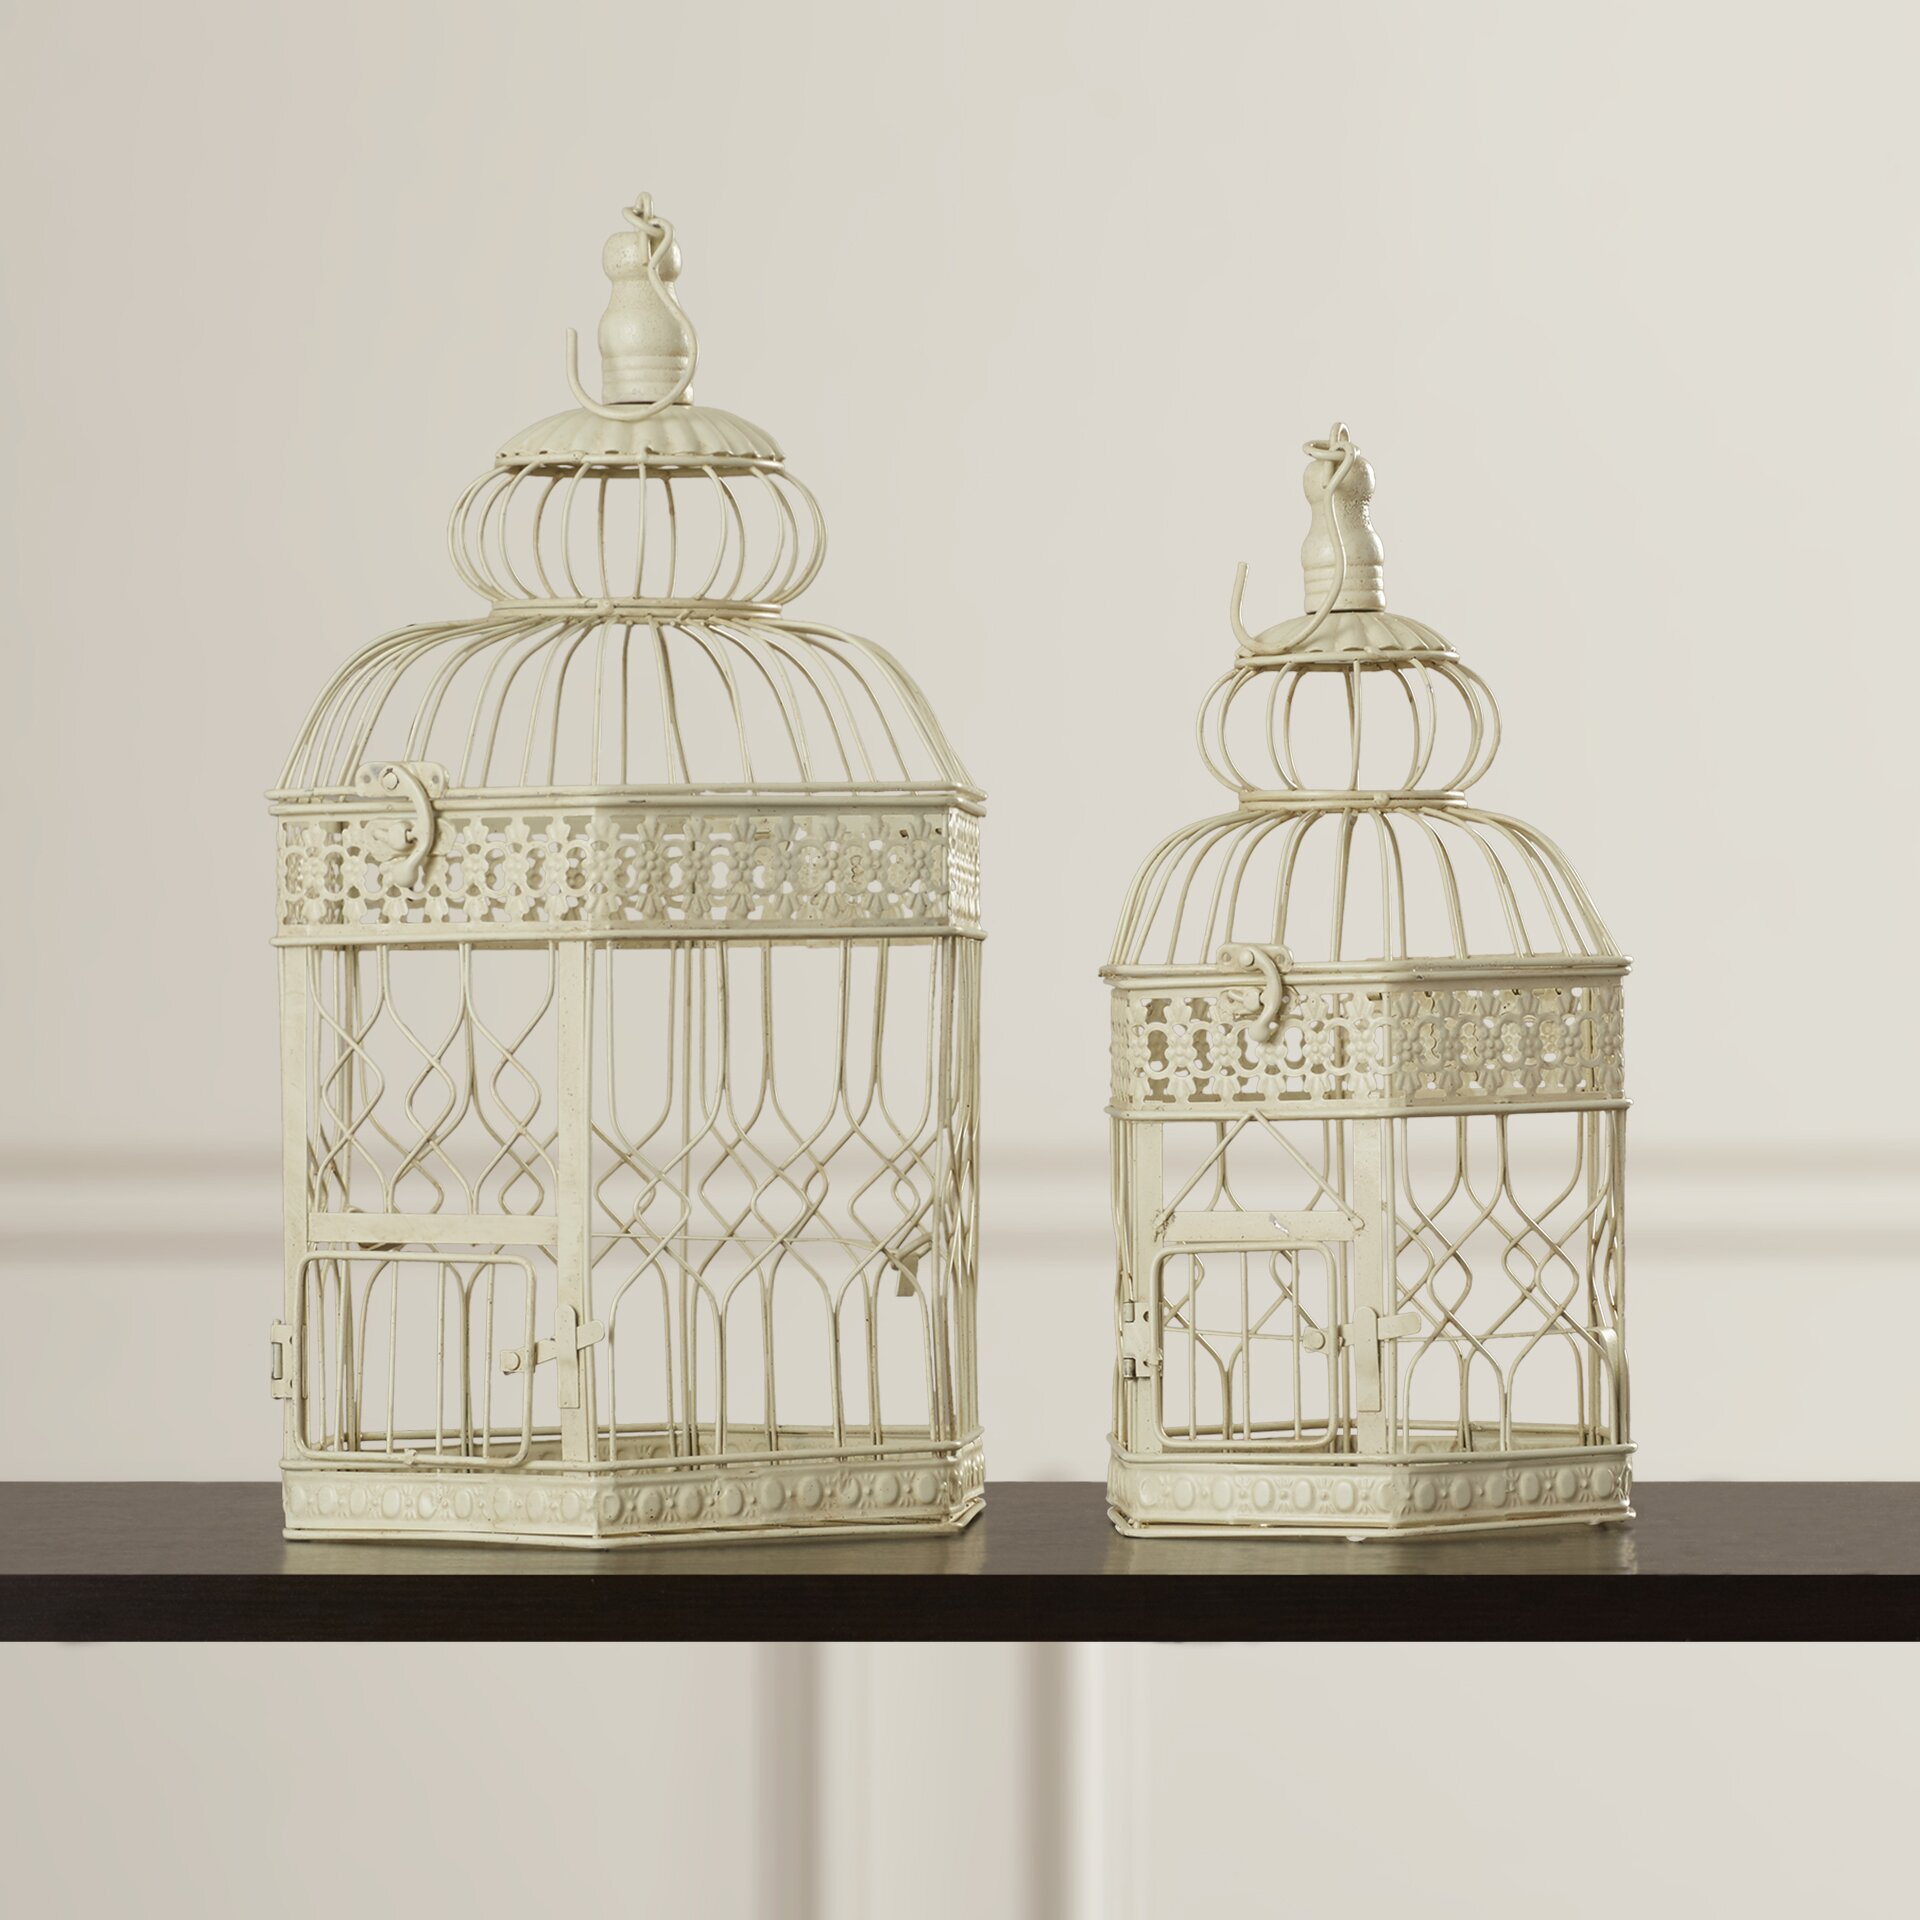 darby home co 2 piece decorative metal bird cage set decorative home decor pieces trend home design and decor